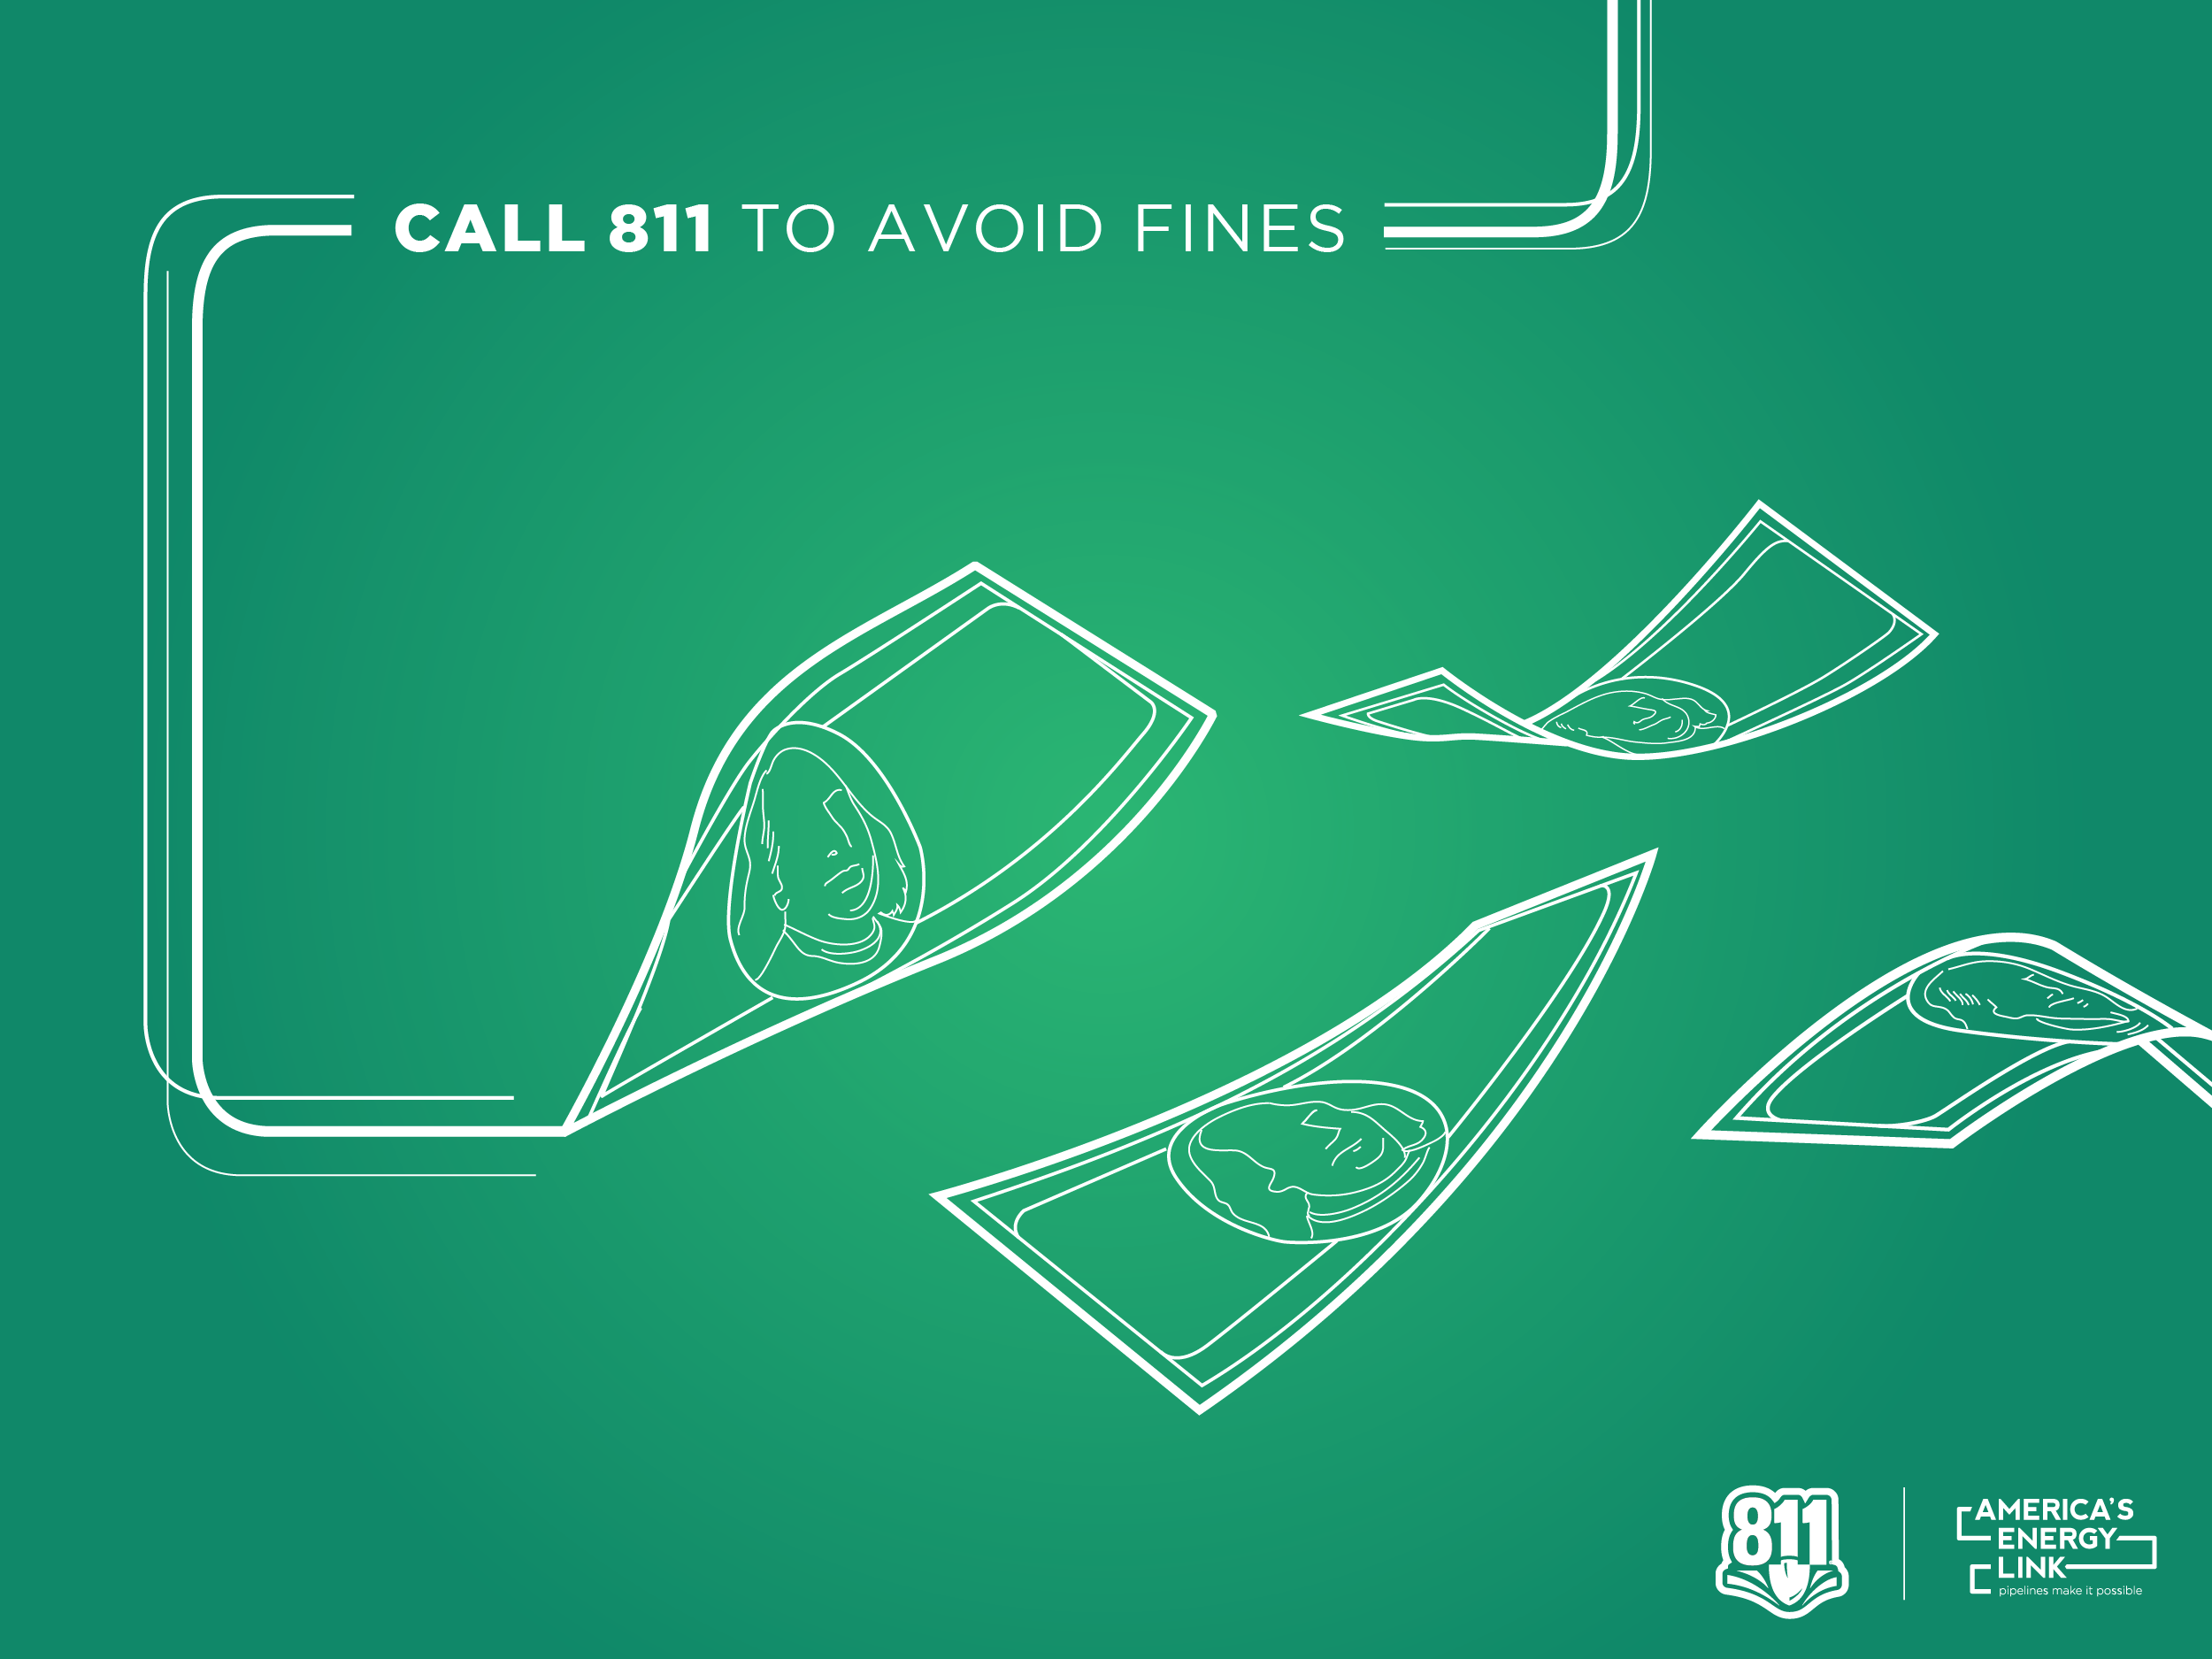 Avoid Fines 811 Social Graphic